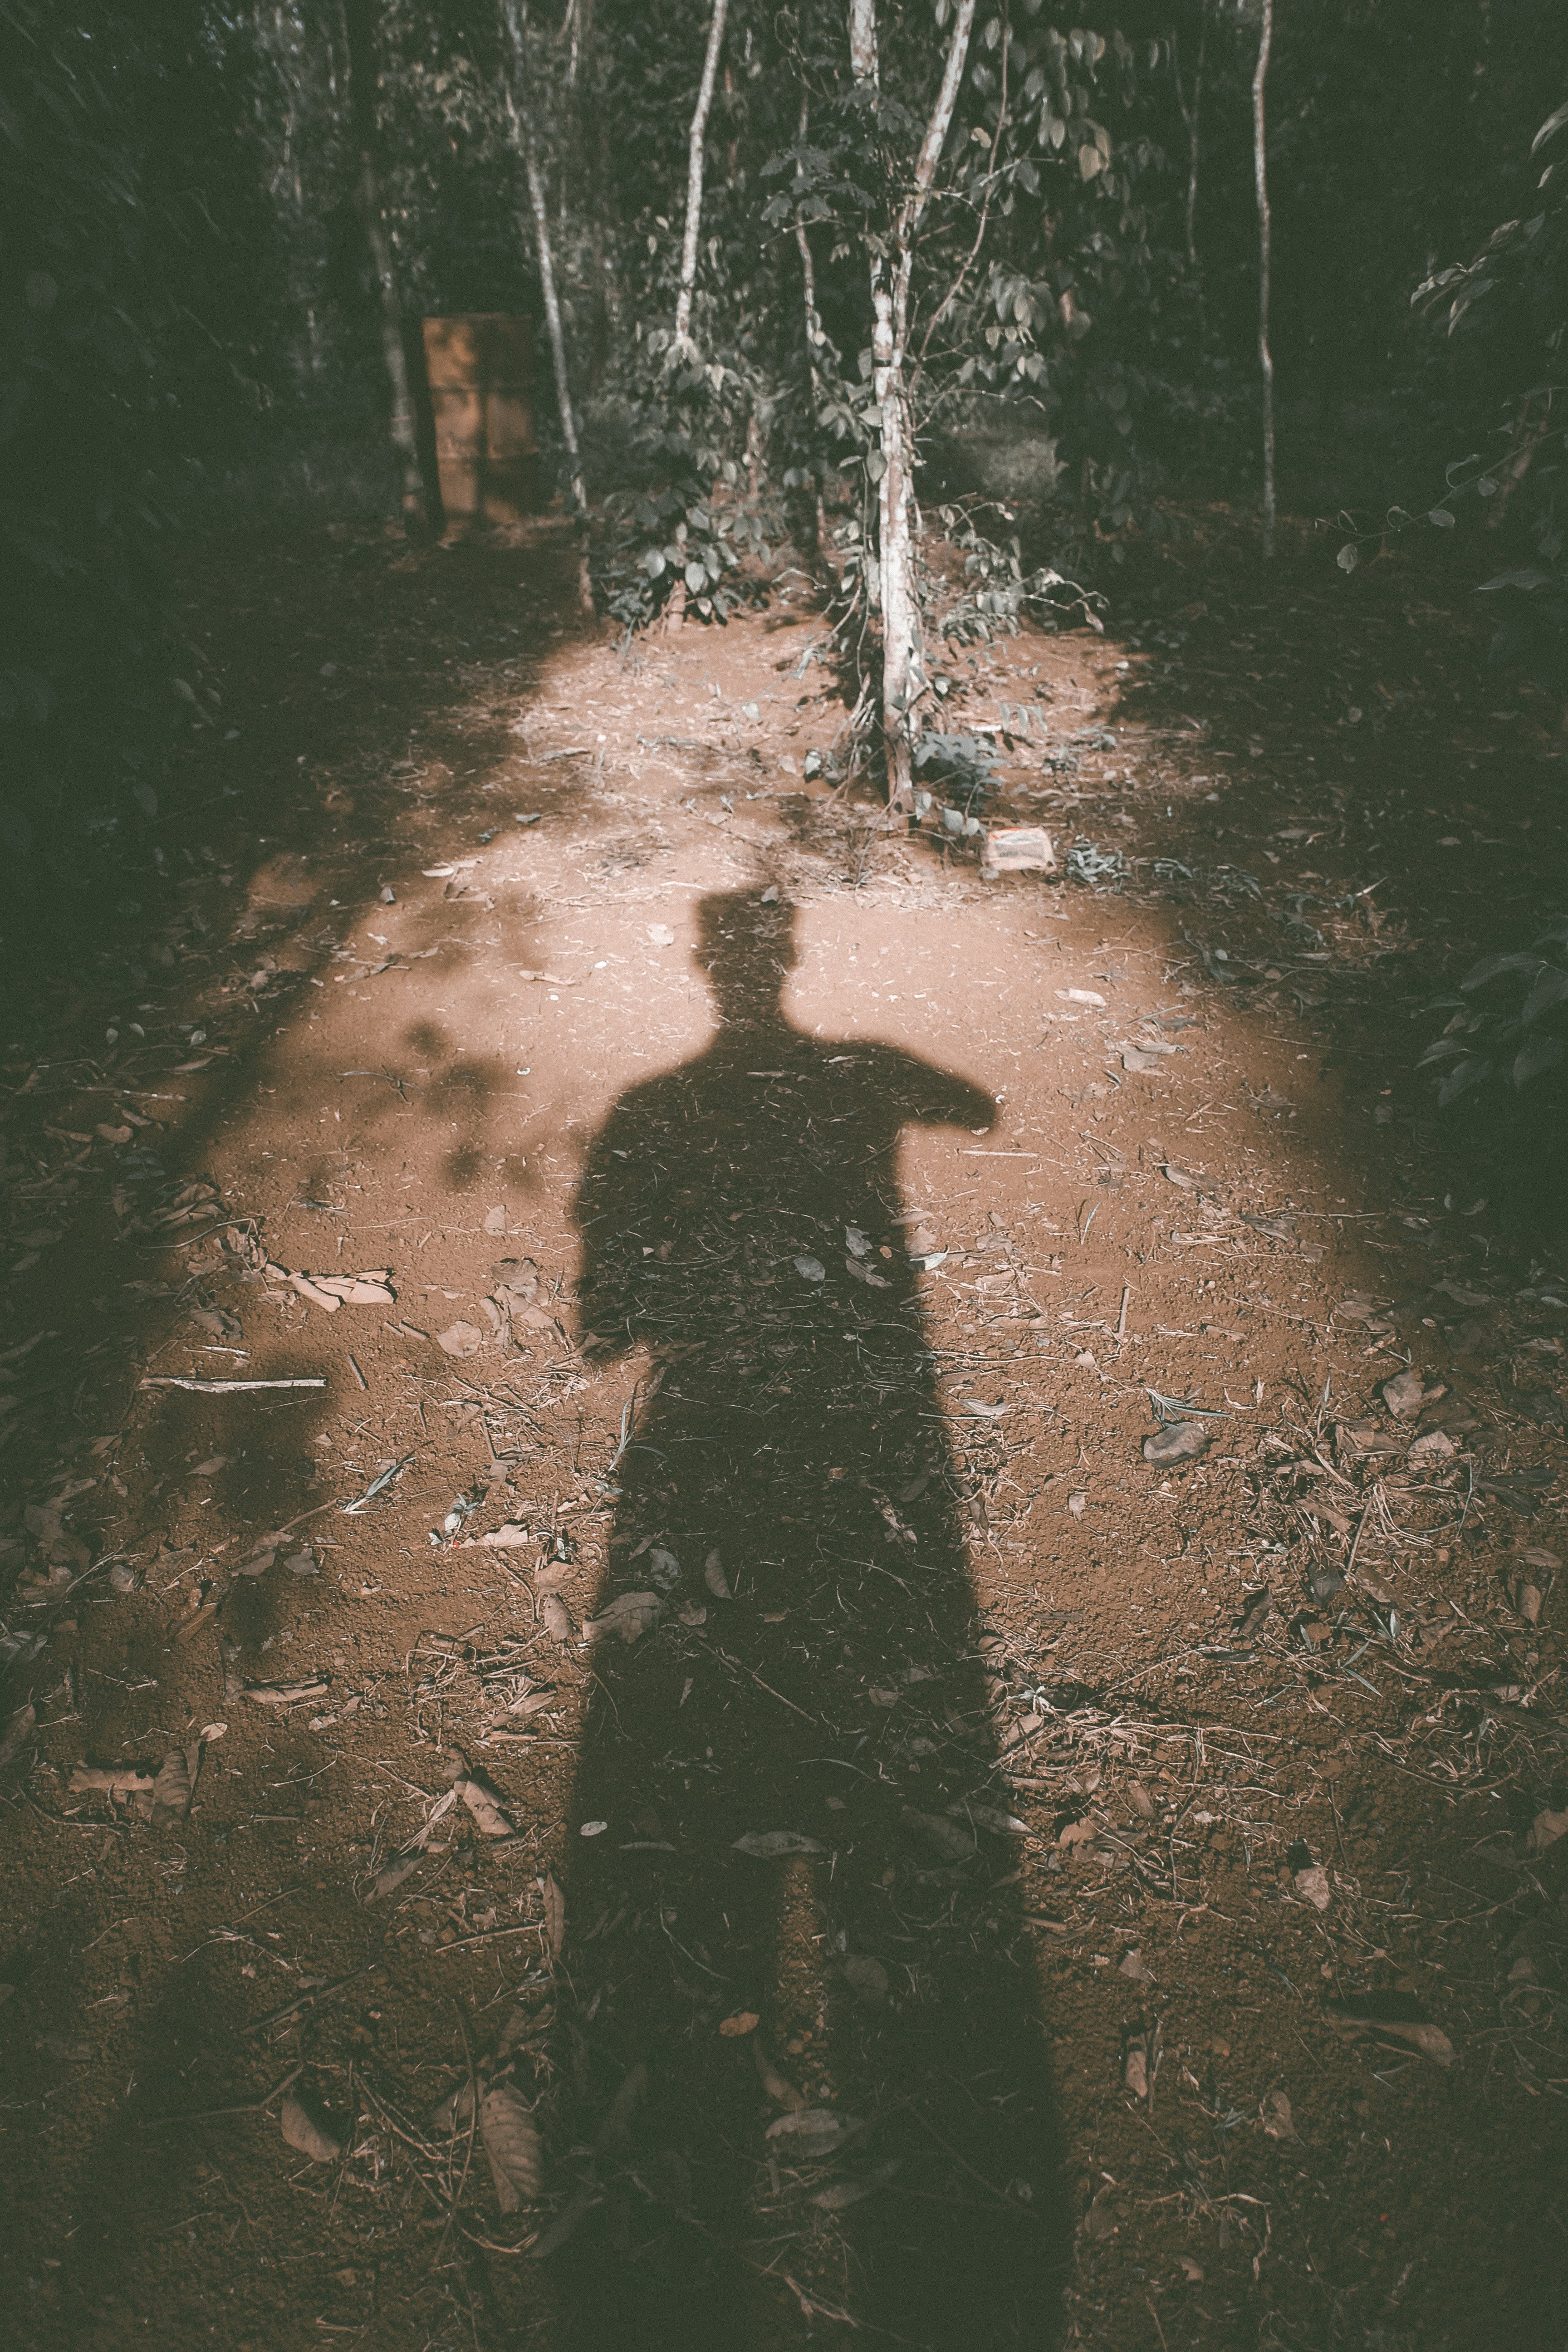 Free stock photo of a person's shadow, evening sun, light and shadow, simple